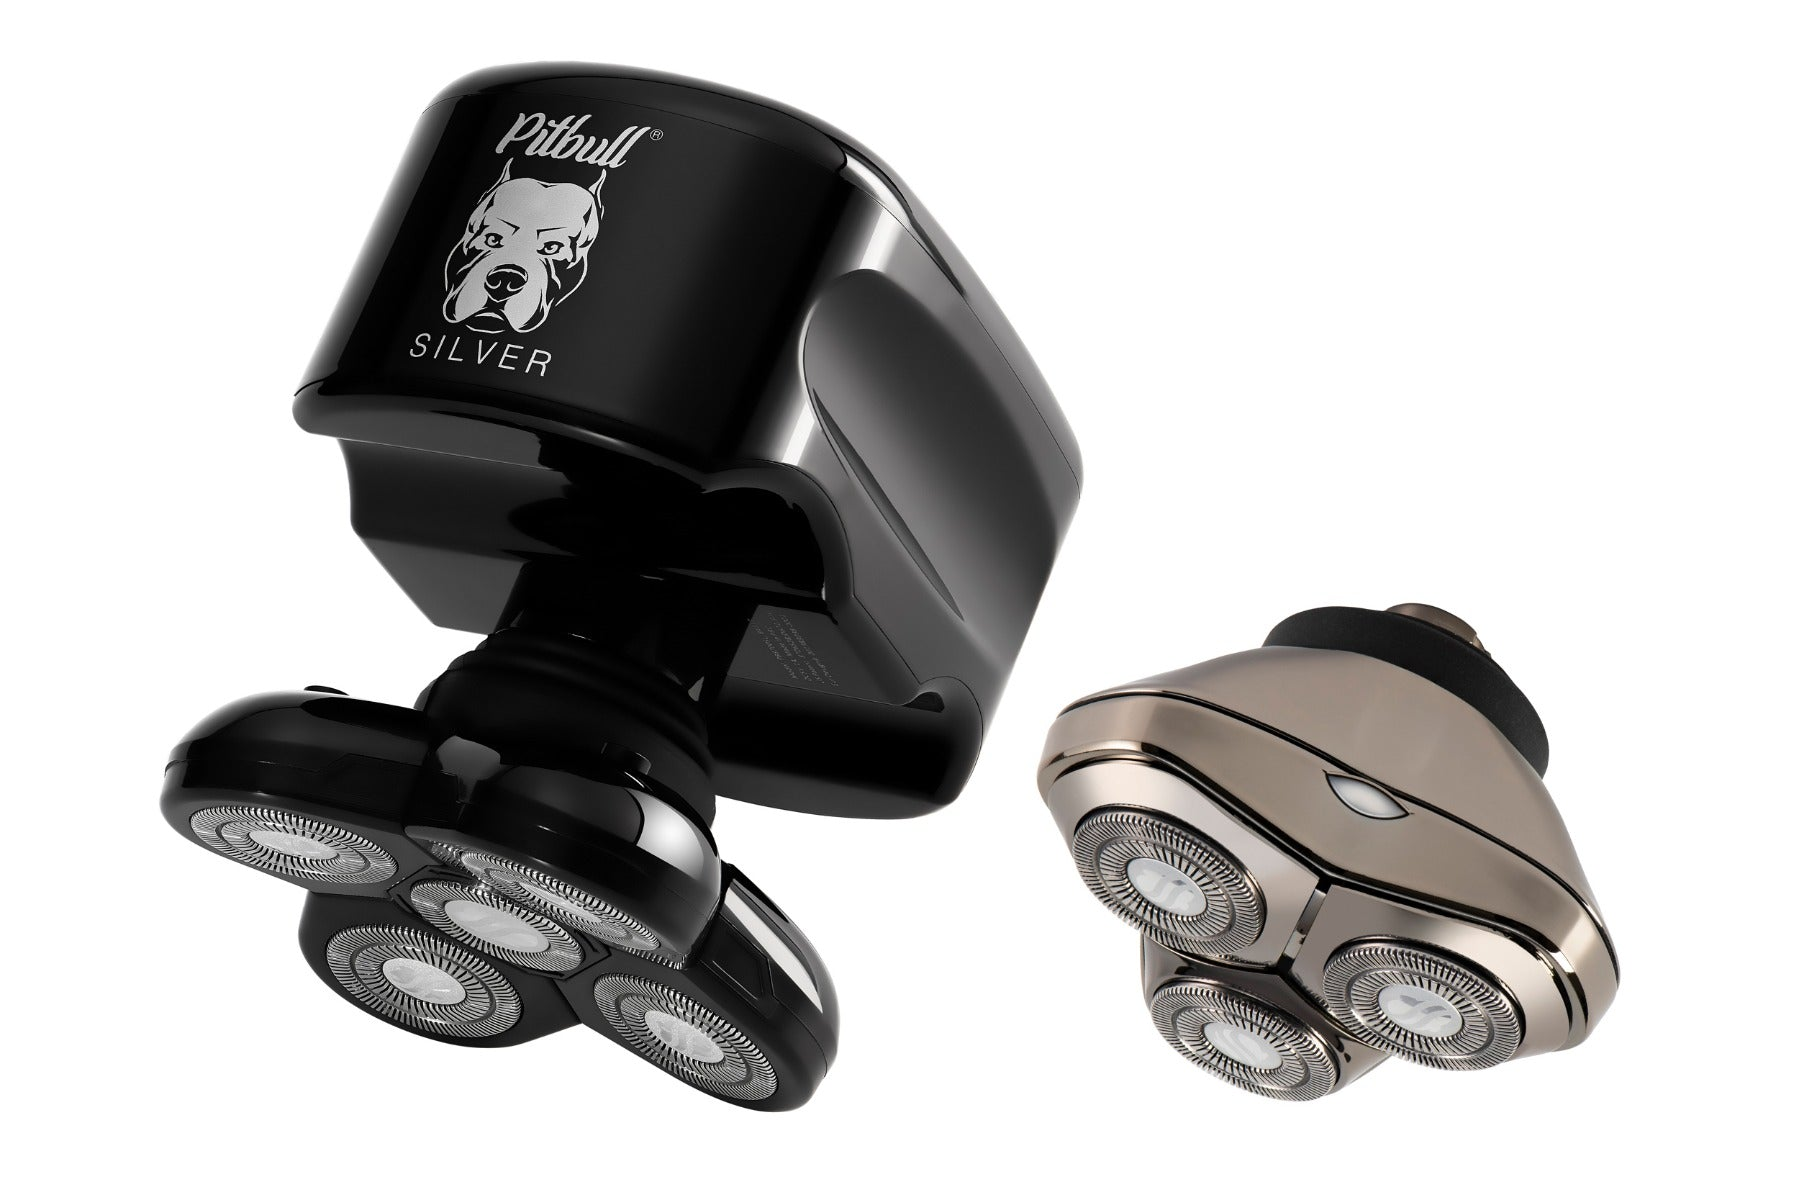 Pitbull silver plus shaver by skull shaver with 2 blades